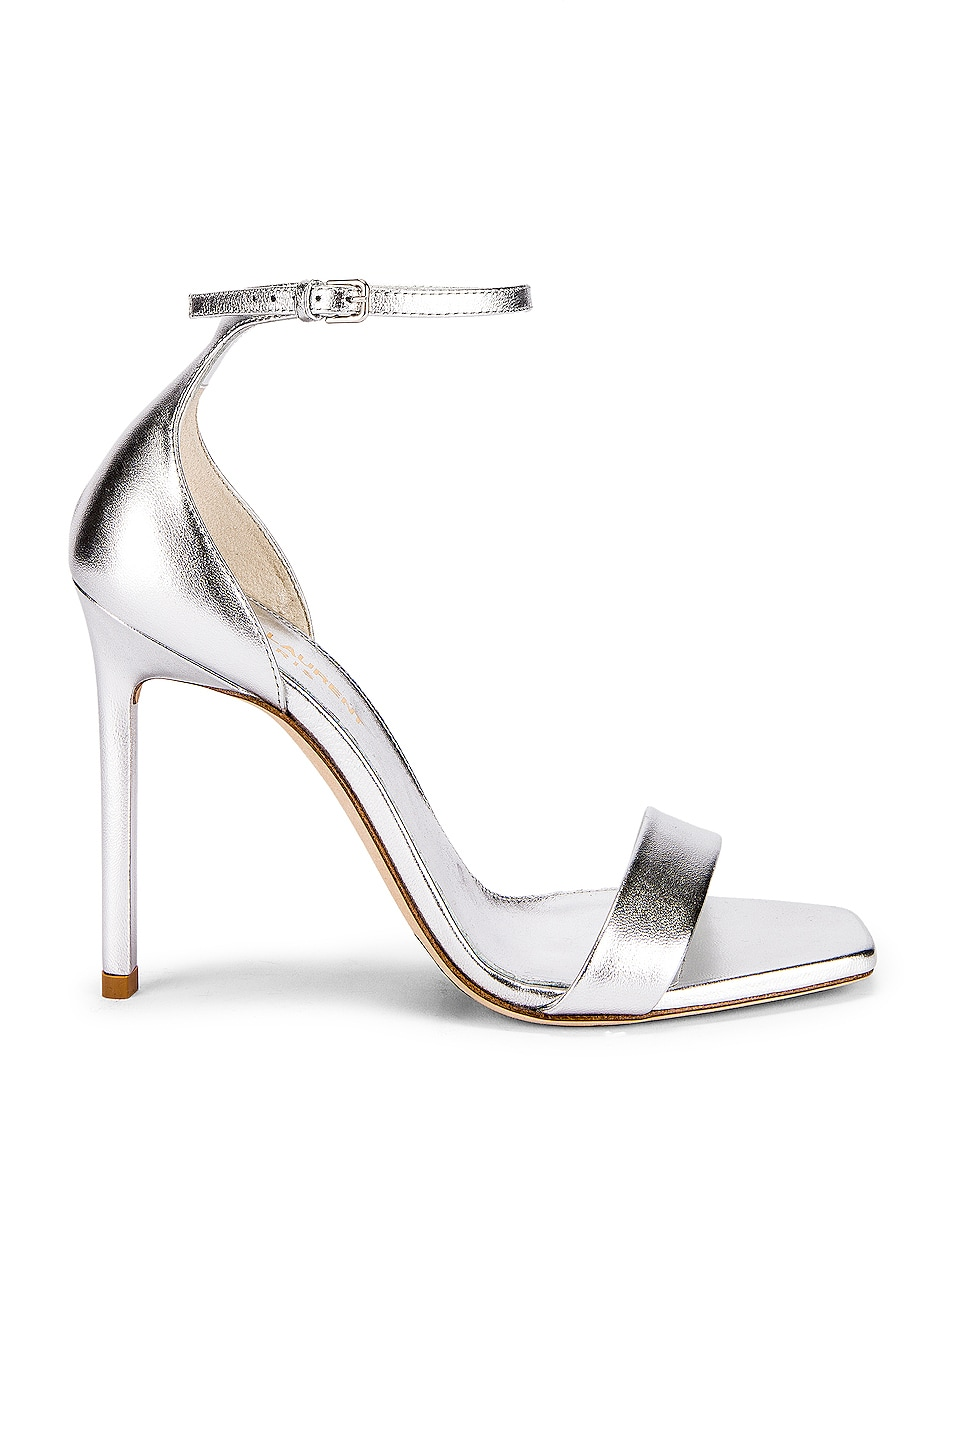 Image 1 of Saint Laurent Amber Ankle Strap Heels in Silver